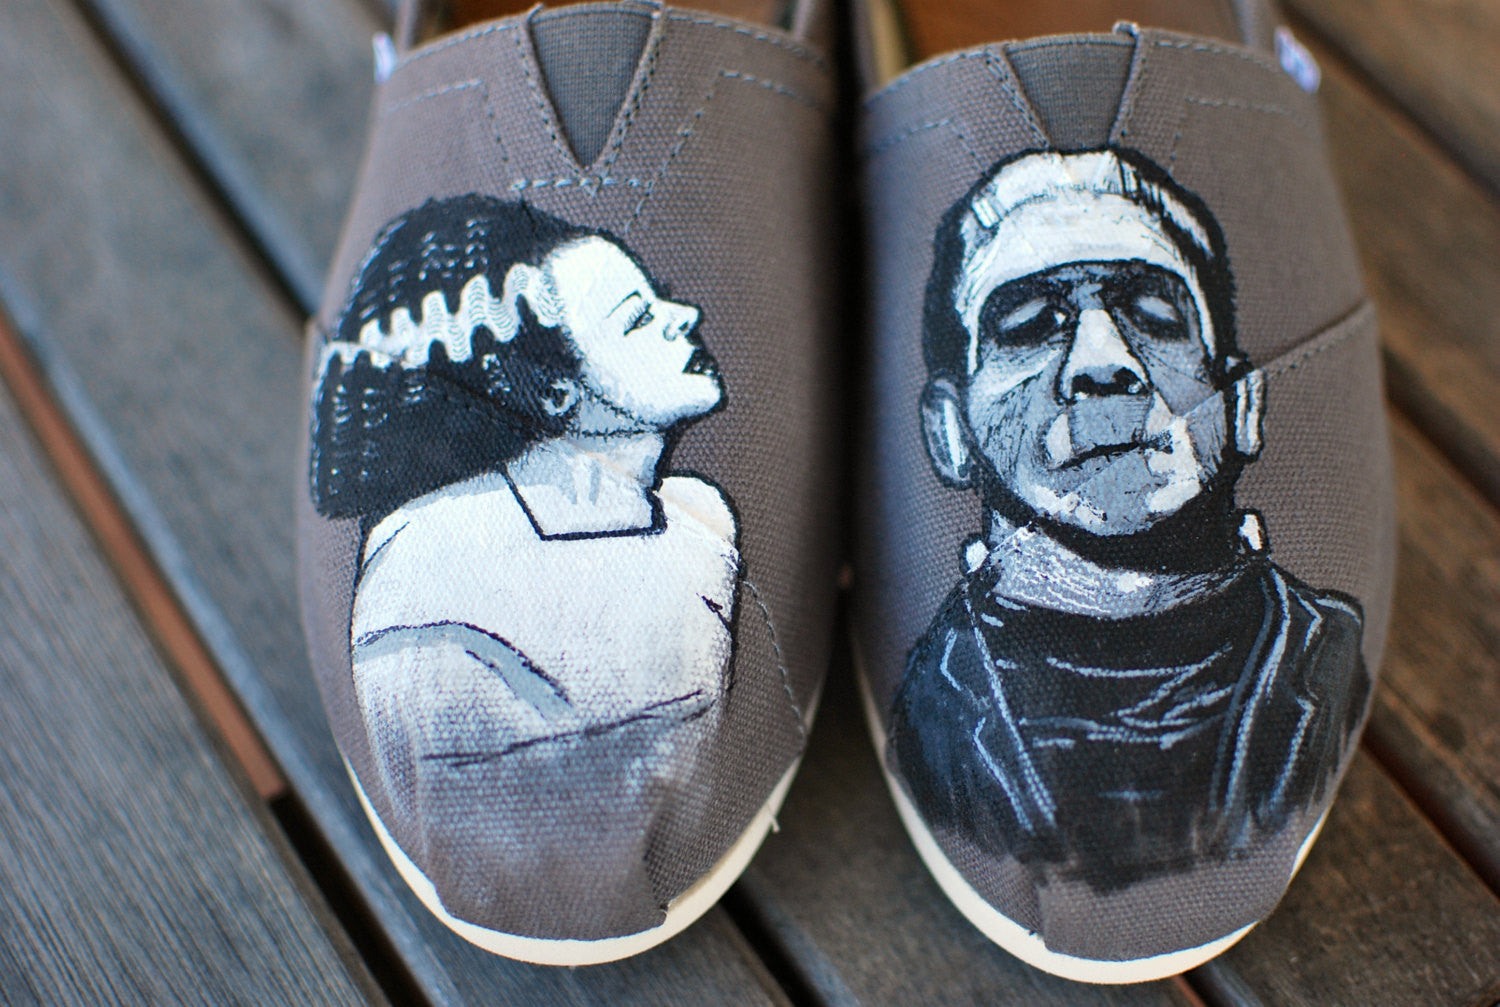 ... Frankenstin and Bride of Frankenstein painted on Ash Grey Classic Toms  shoes ...